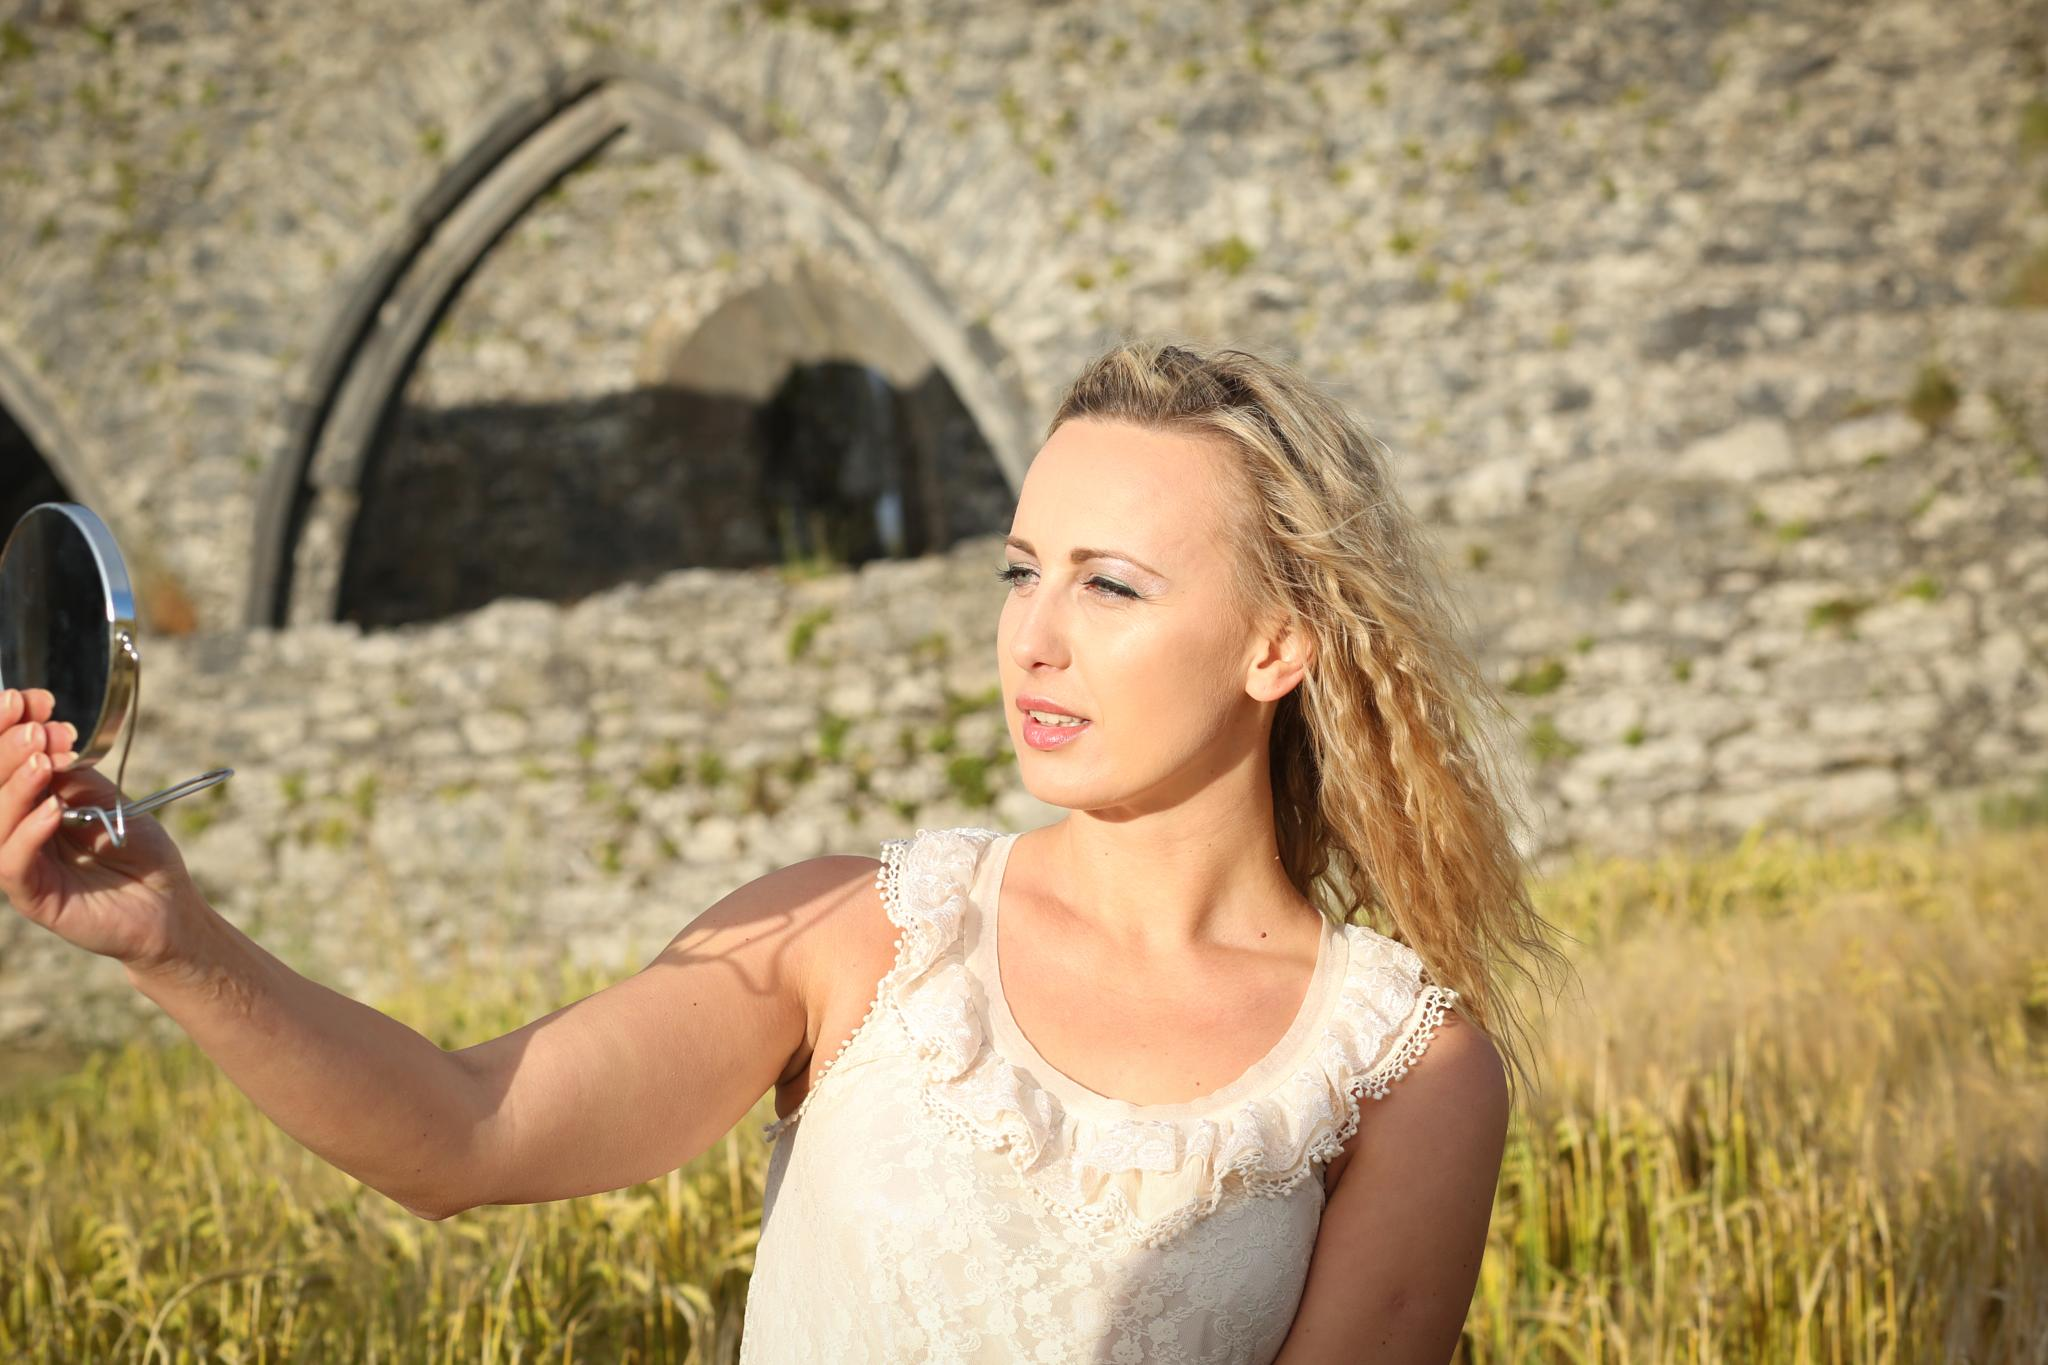 Young Lady in the Irish Summer sun by johndsull